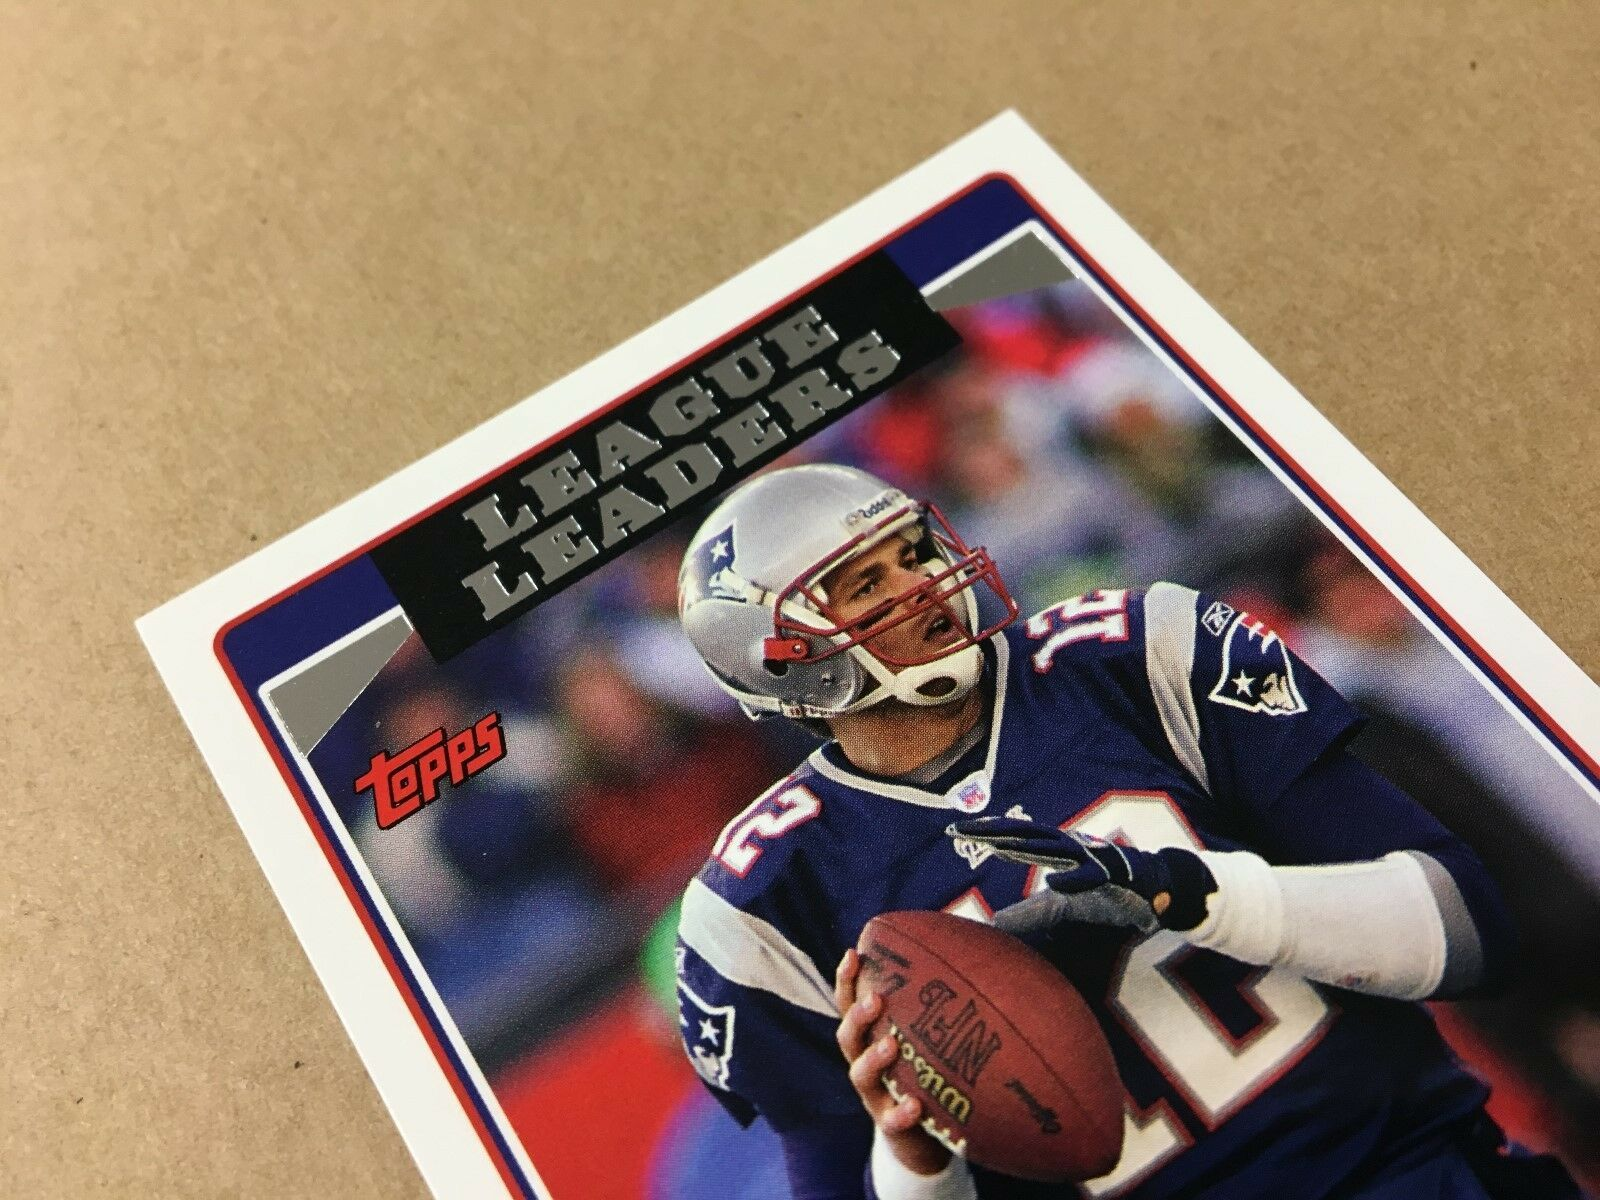 NM to Mint 2006 Tom Brady League Leaders Card 280 Topps Ready to Grade!